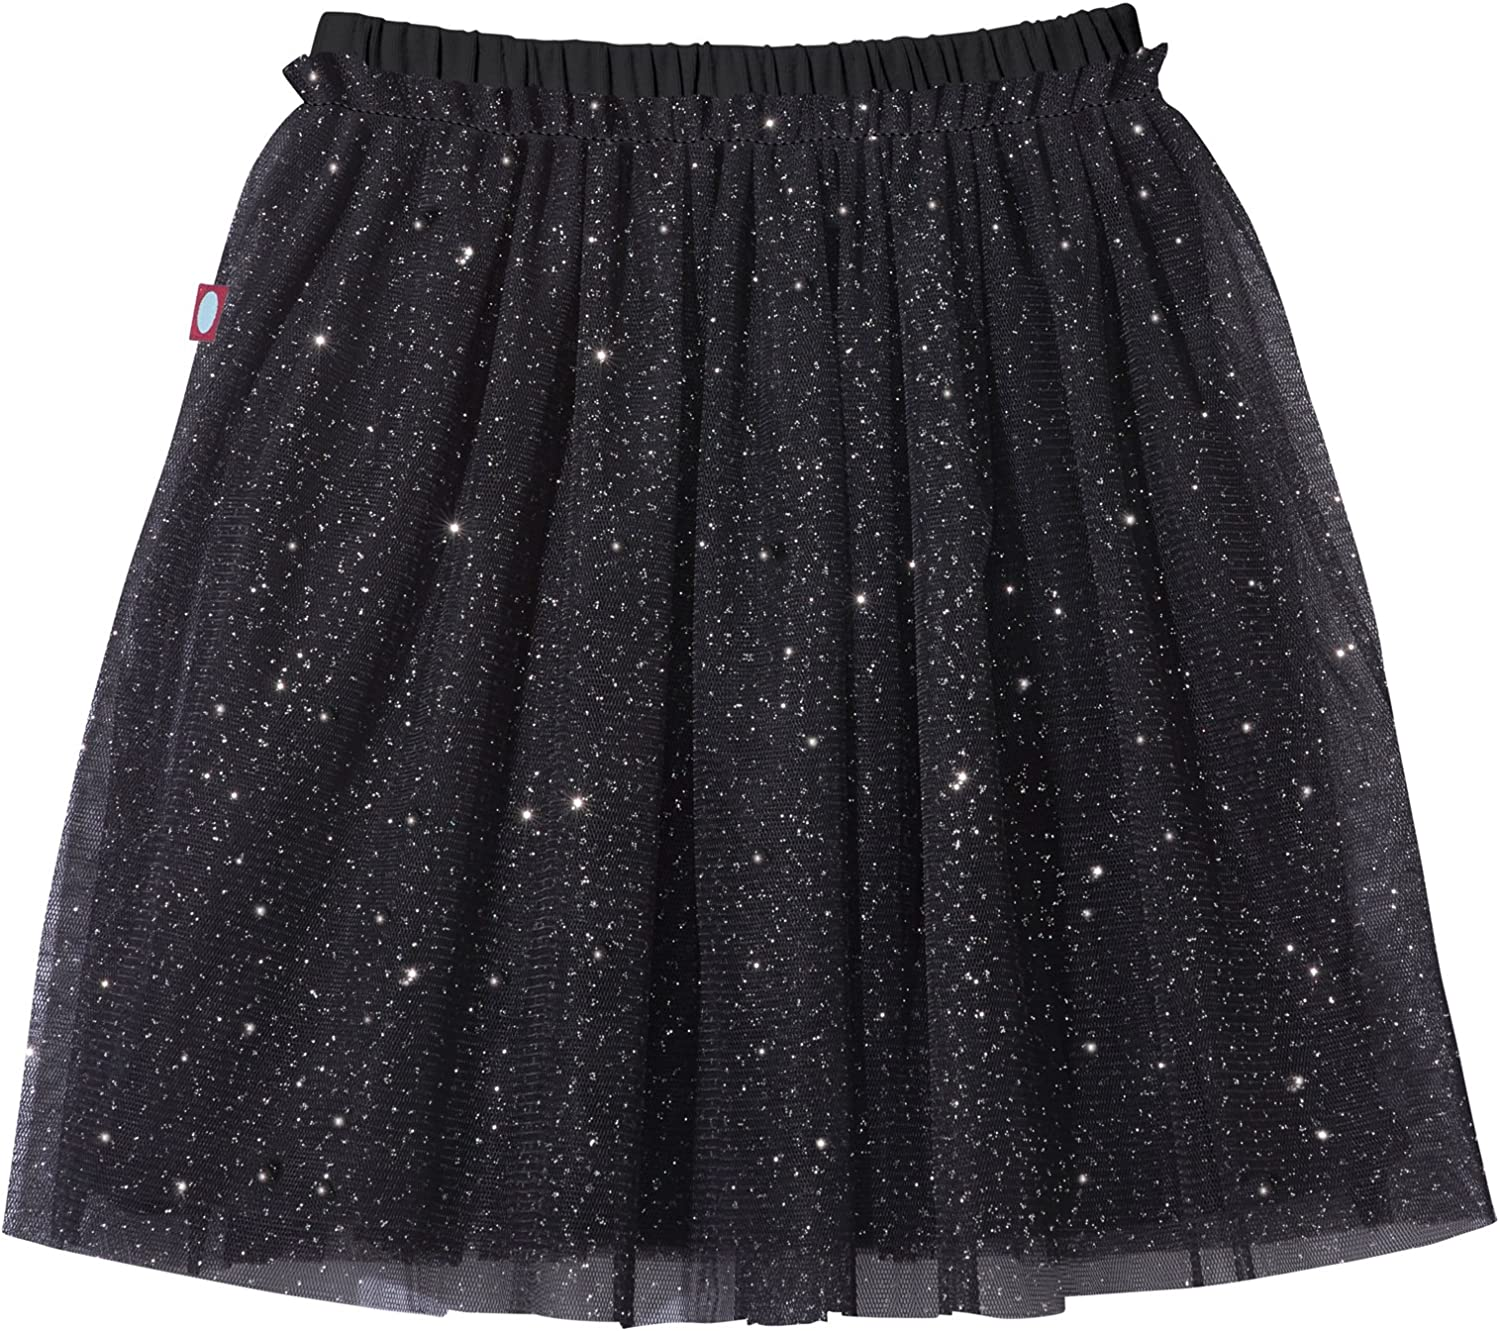 City Las Vegas Mall Threads Girls Sparkly High quality new Tutu with Spar Cotton Full and Lining